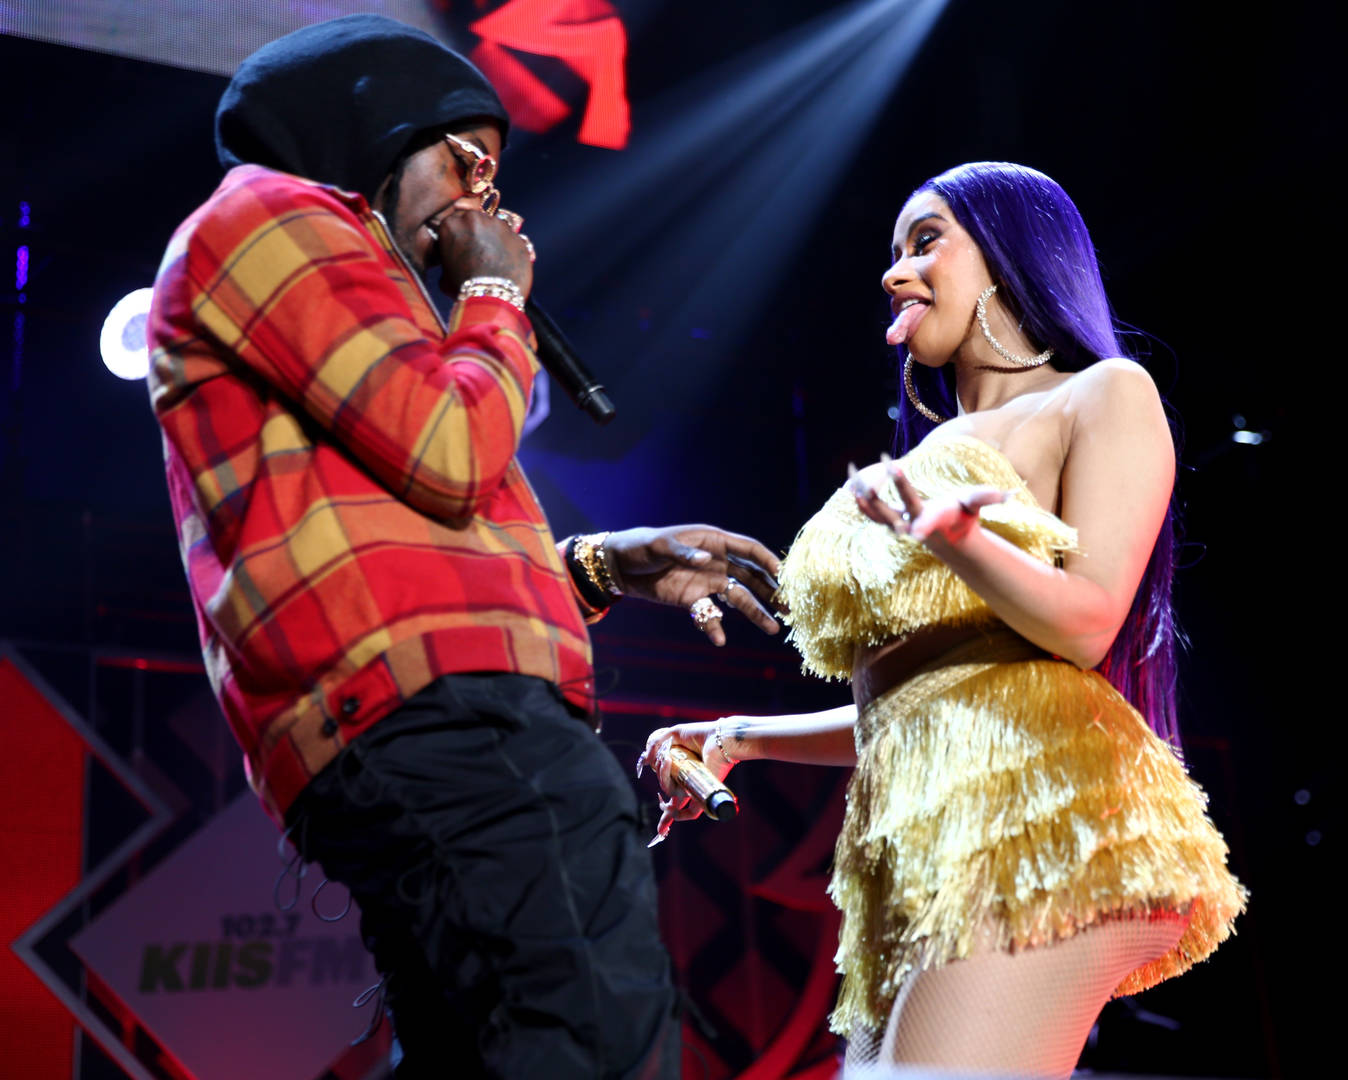 Cardi B. Confirms She's Working Things Out With Offset